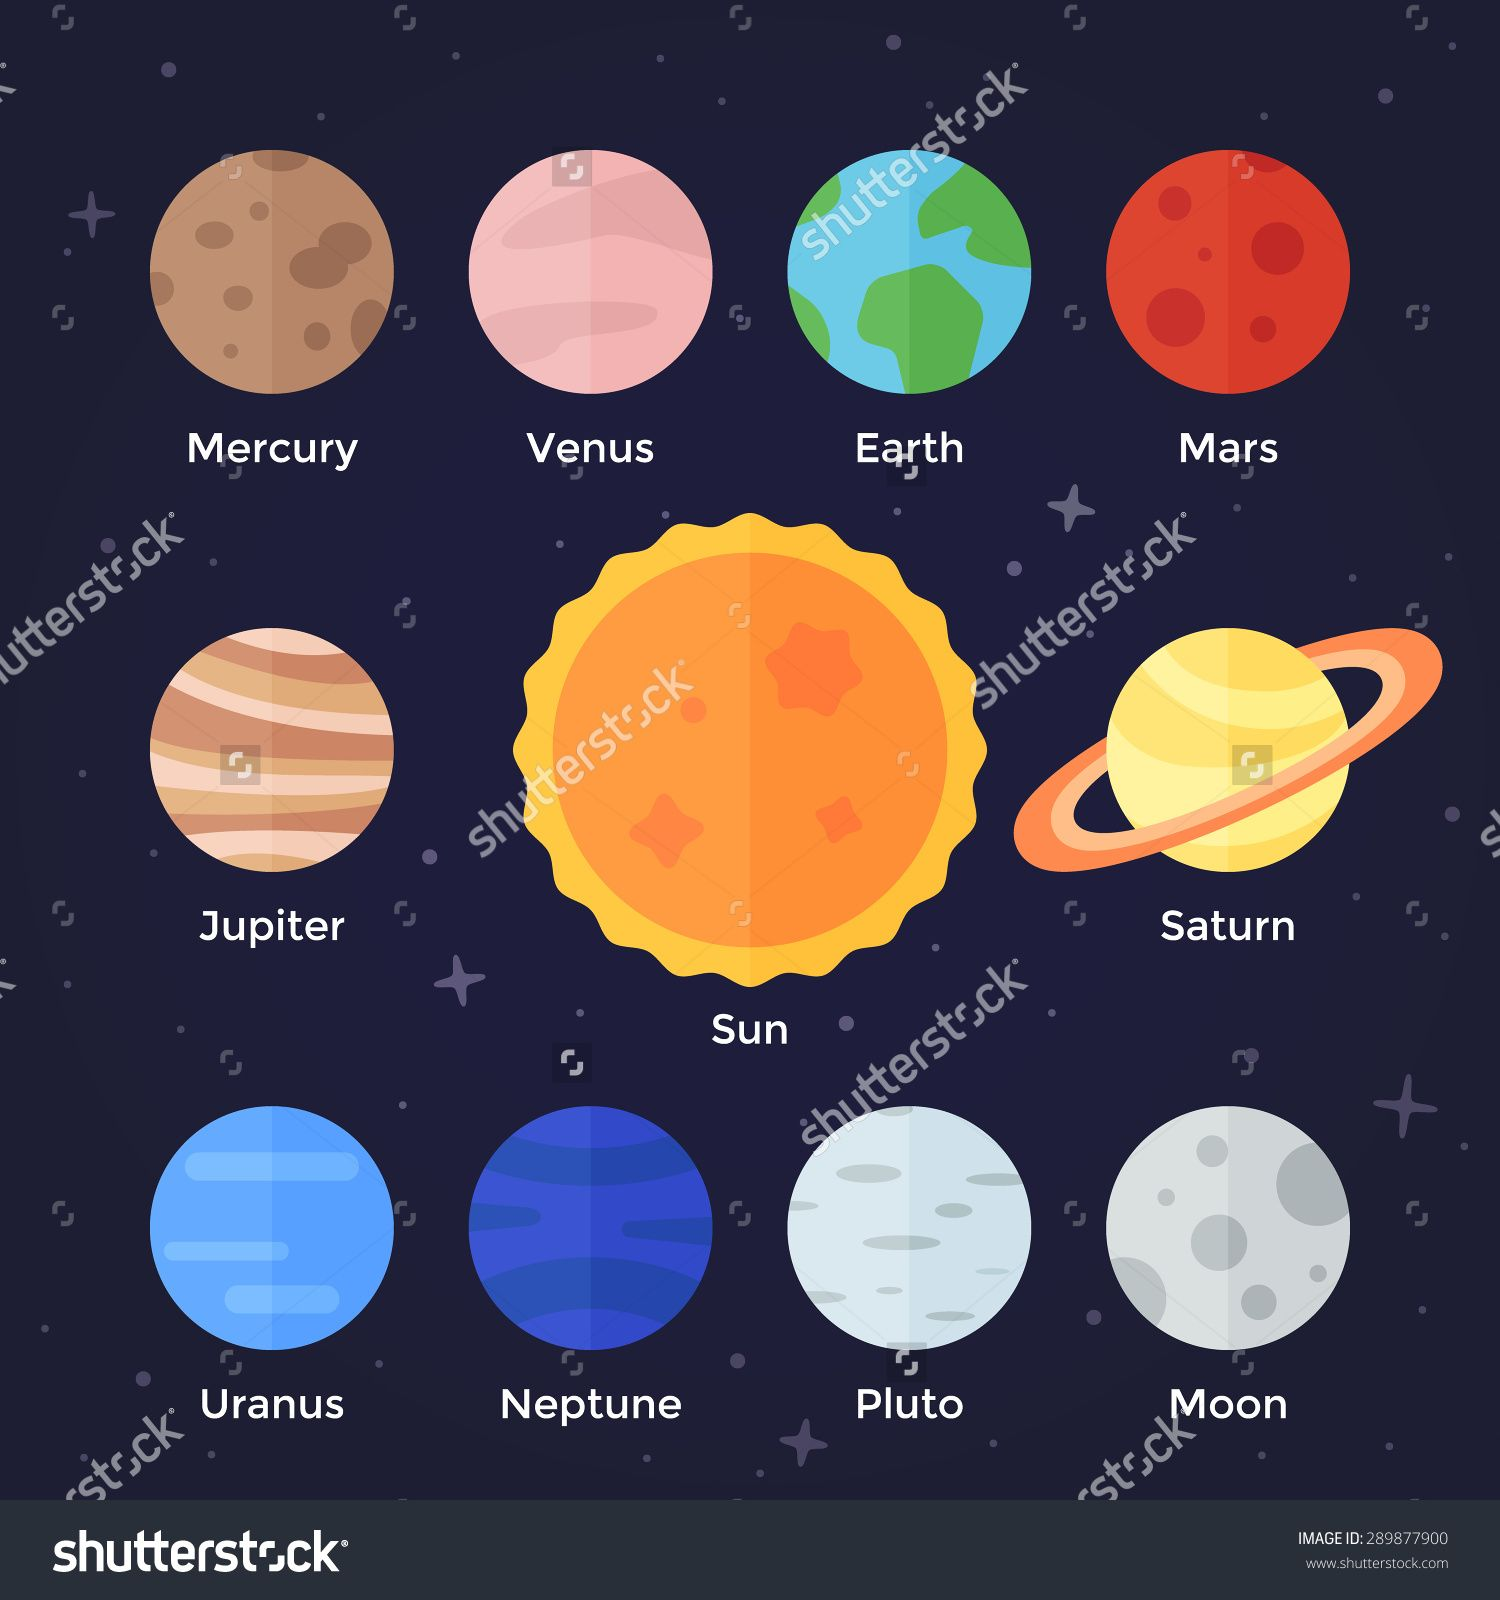 planet colors for solar system project - Google Search